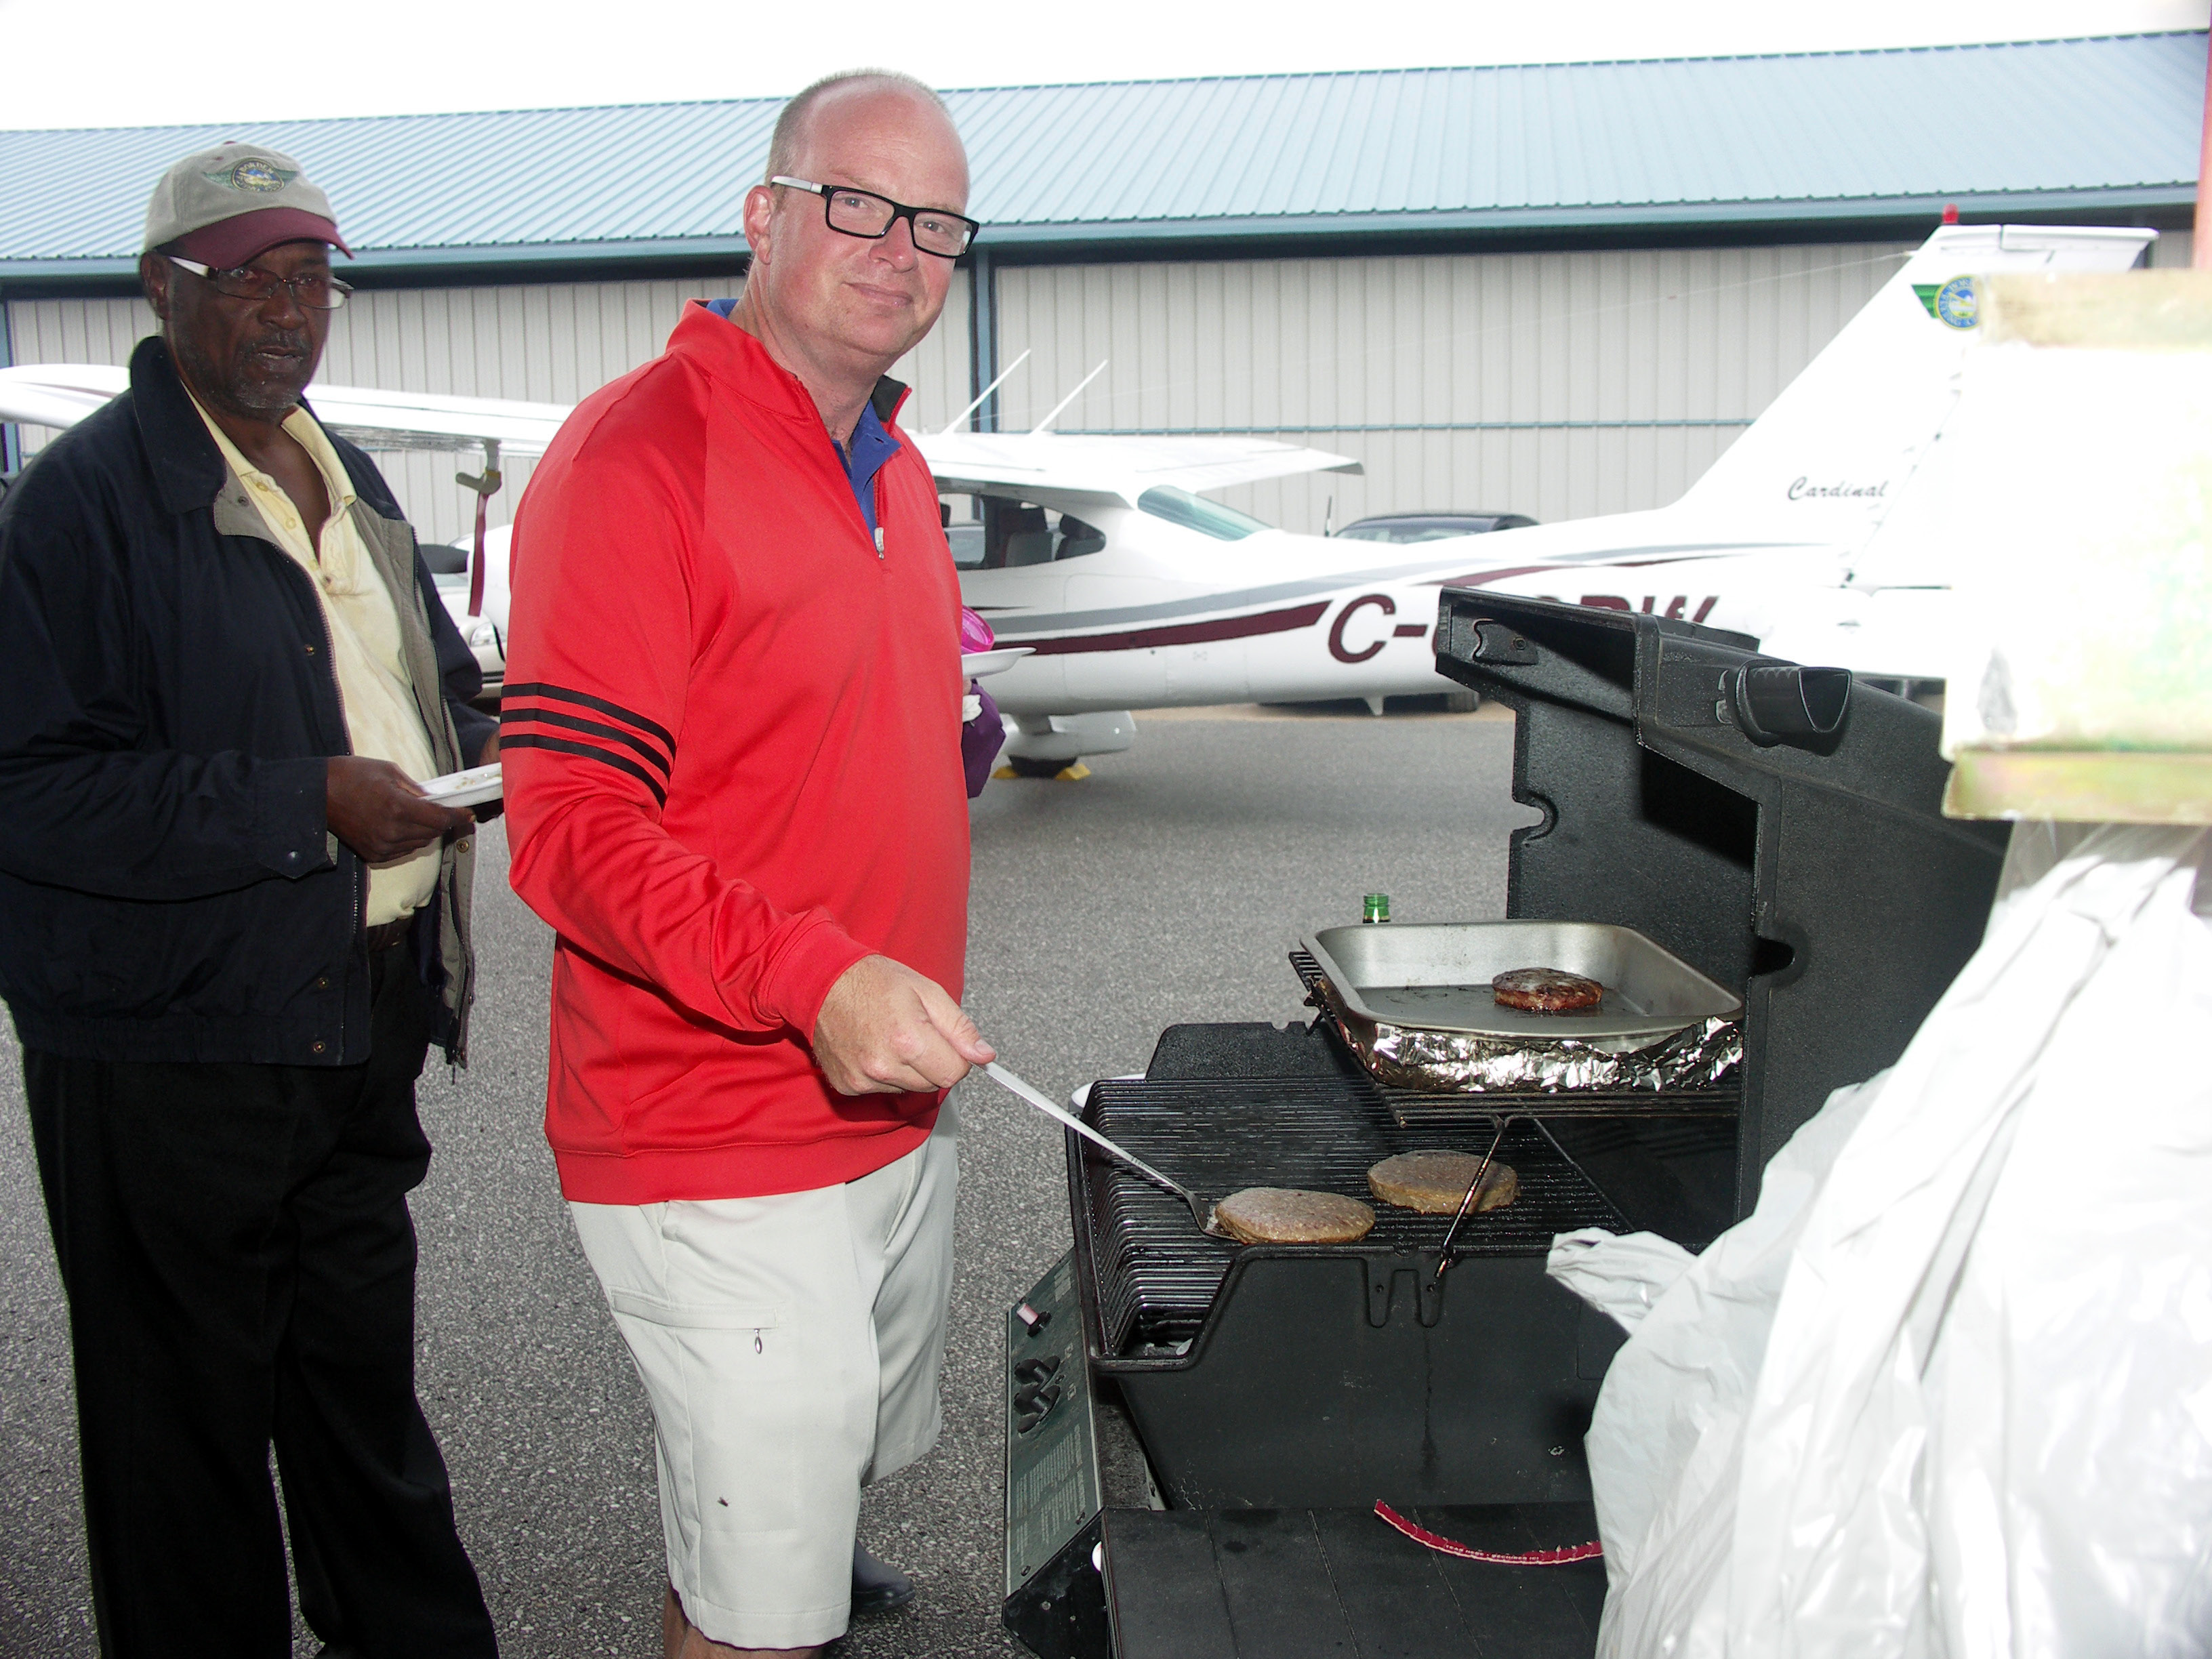 Grill Master Chris Thompson and one our guests Raule, taking care of business.